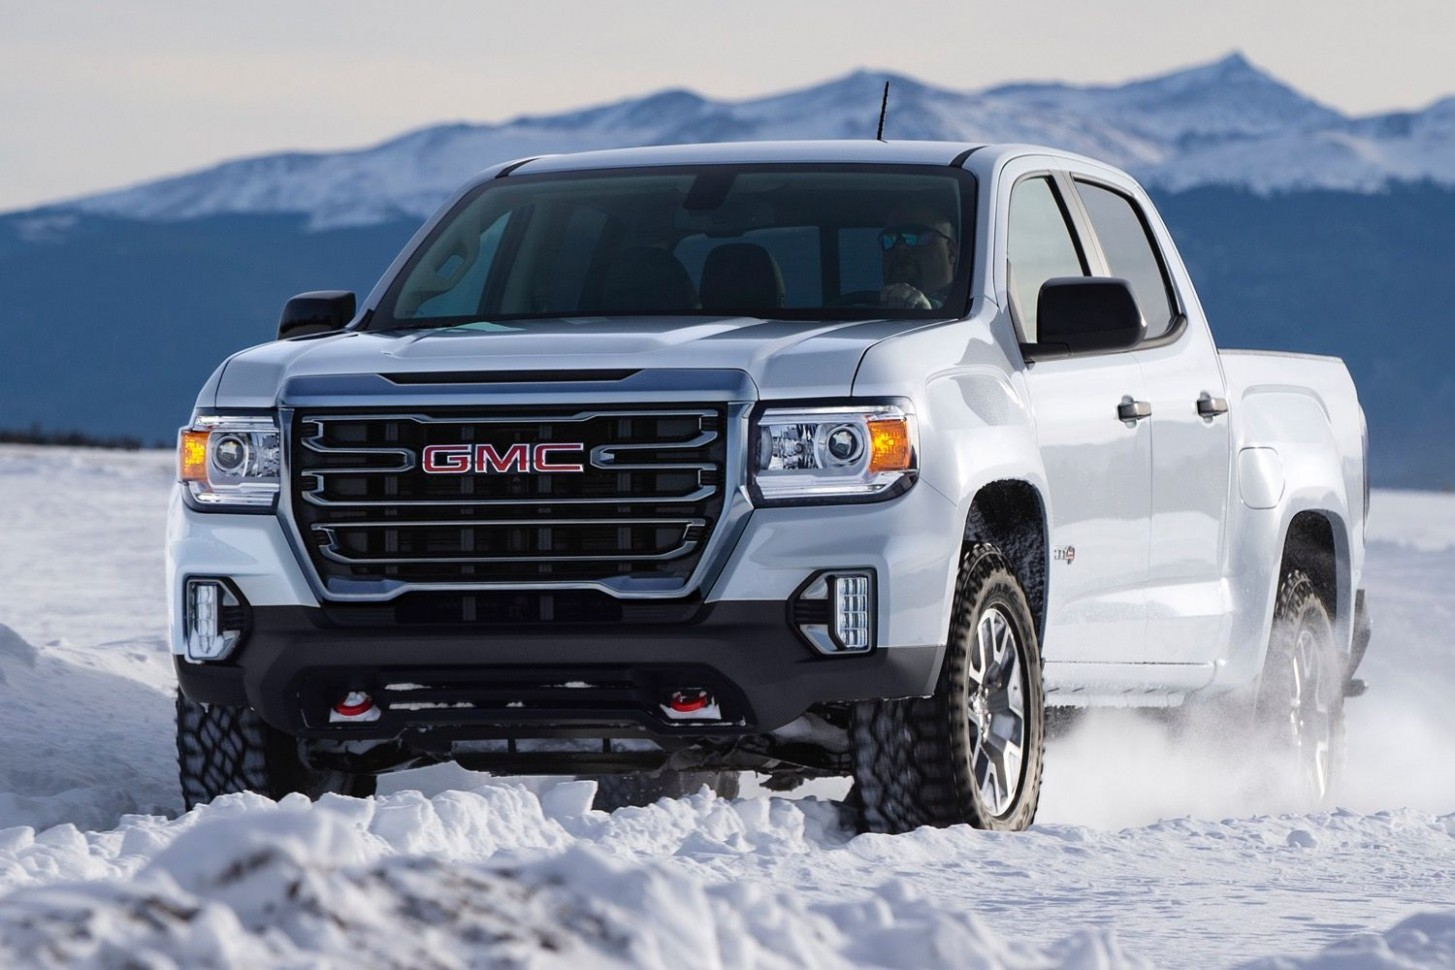 4 Gmc X Ray Redesign and Idea in 4 Gmc canyon, Gmc canyon - 2021 Gmc X Ray